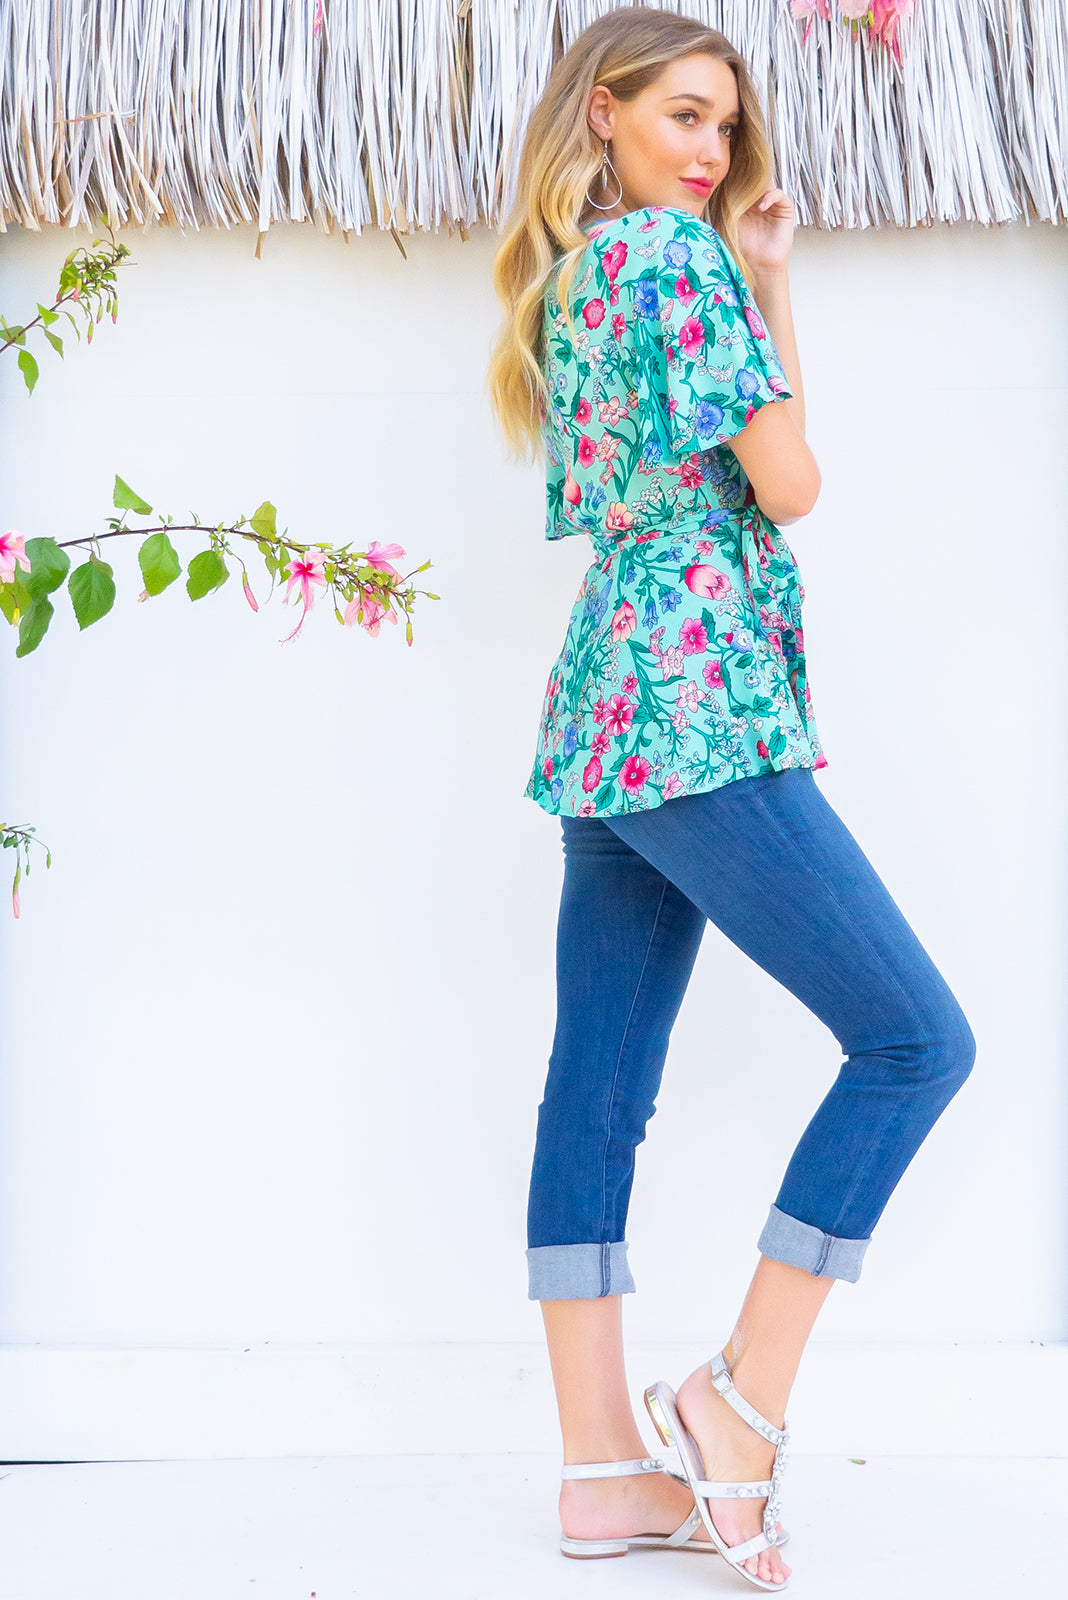 Delta Minty Meadow Wrap Top in a minty blue fun floral print has petal sleeve and wrap around waist